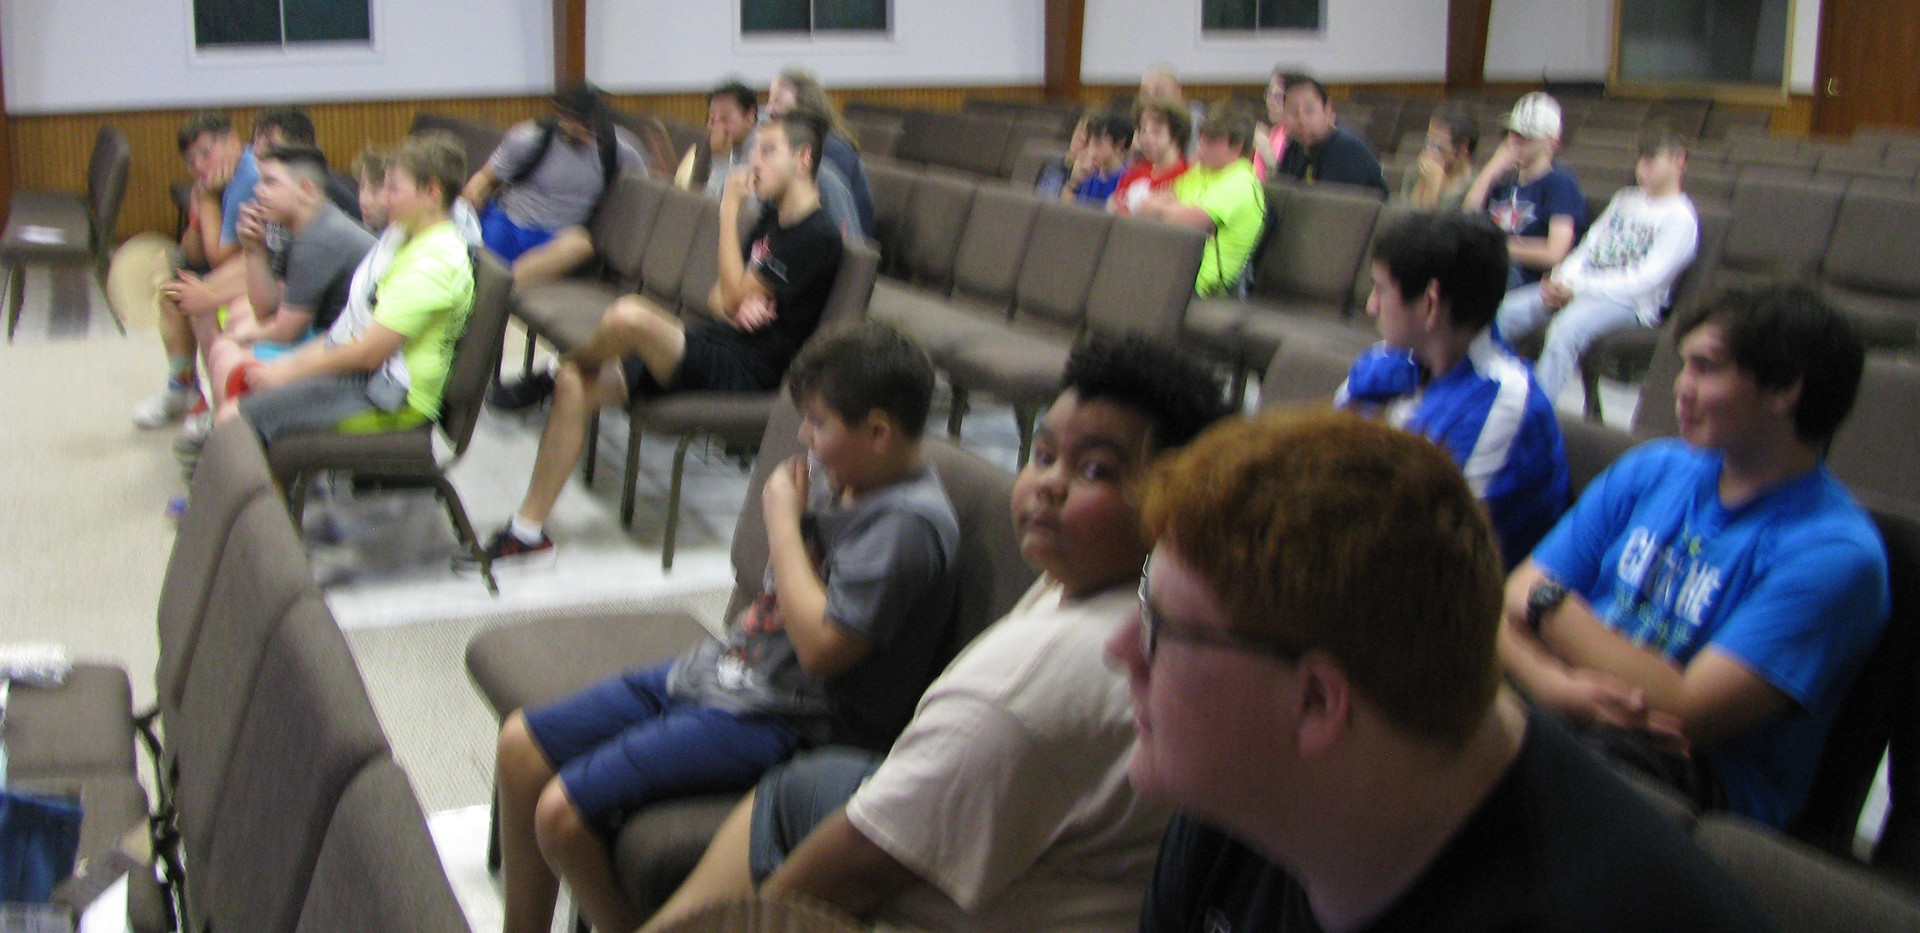 31. Friday Night Live at FBC Golden Mead